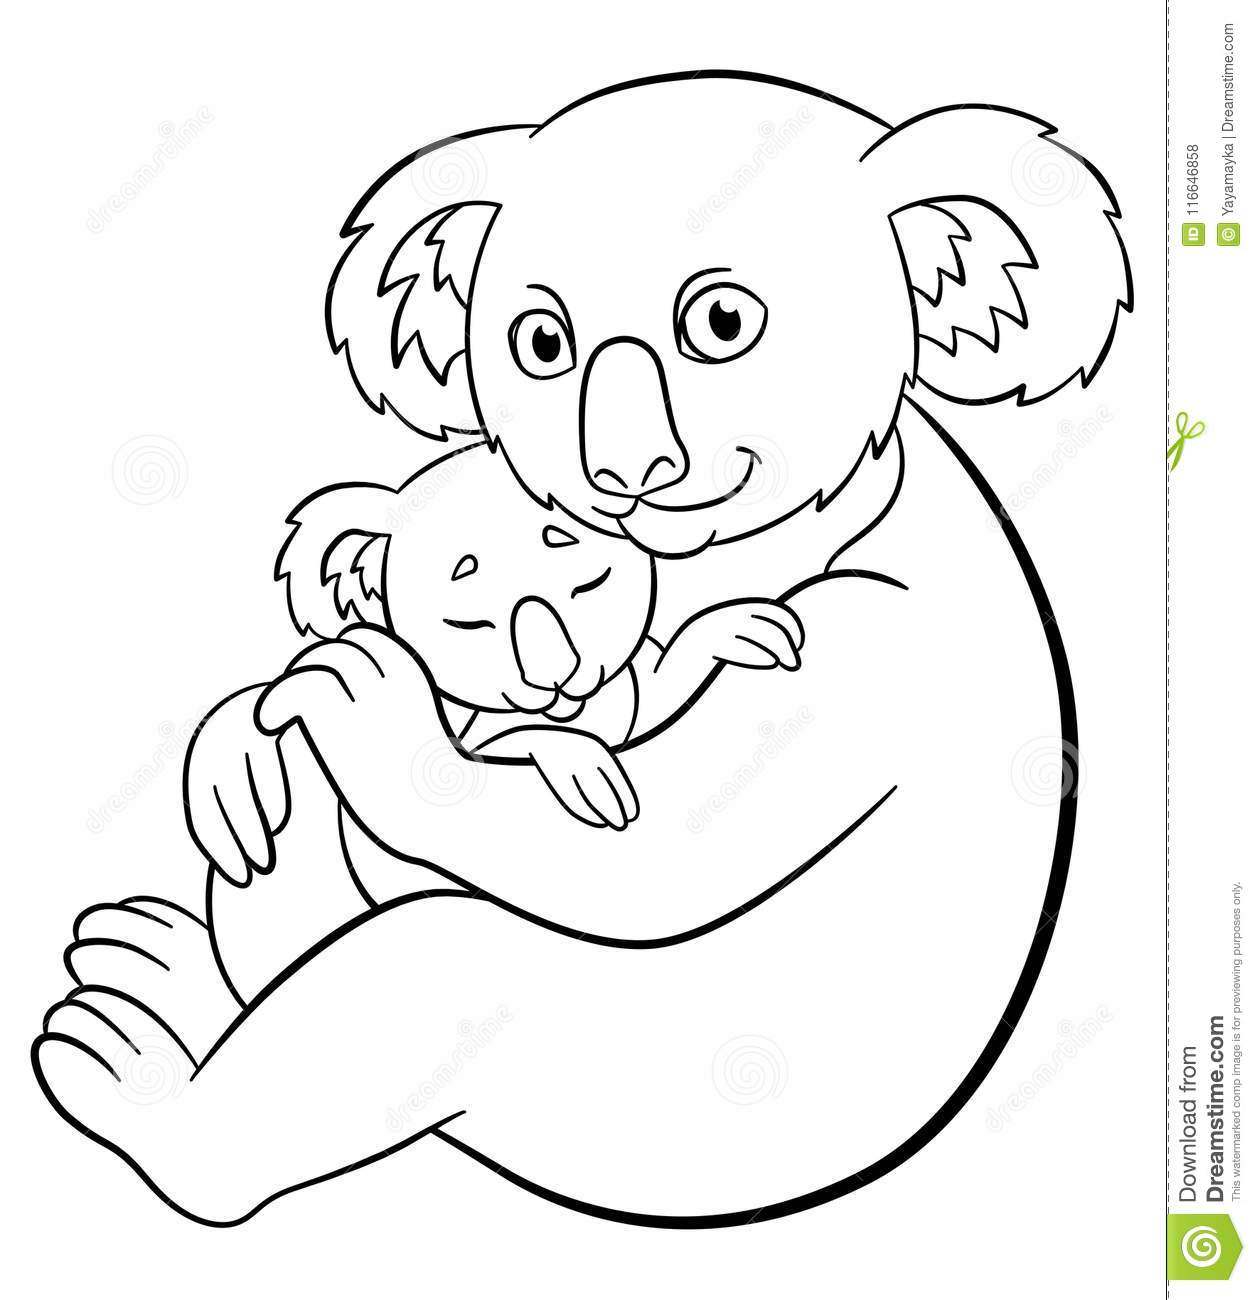 Coloring Pages Mother Koala With Her Cute Sleeping Baby Stock Vector